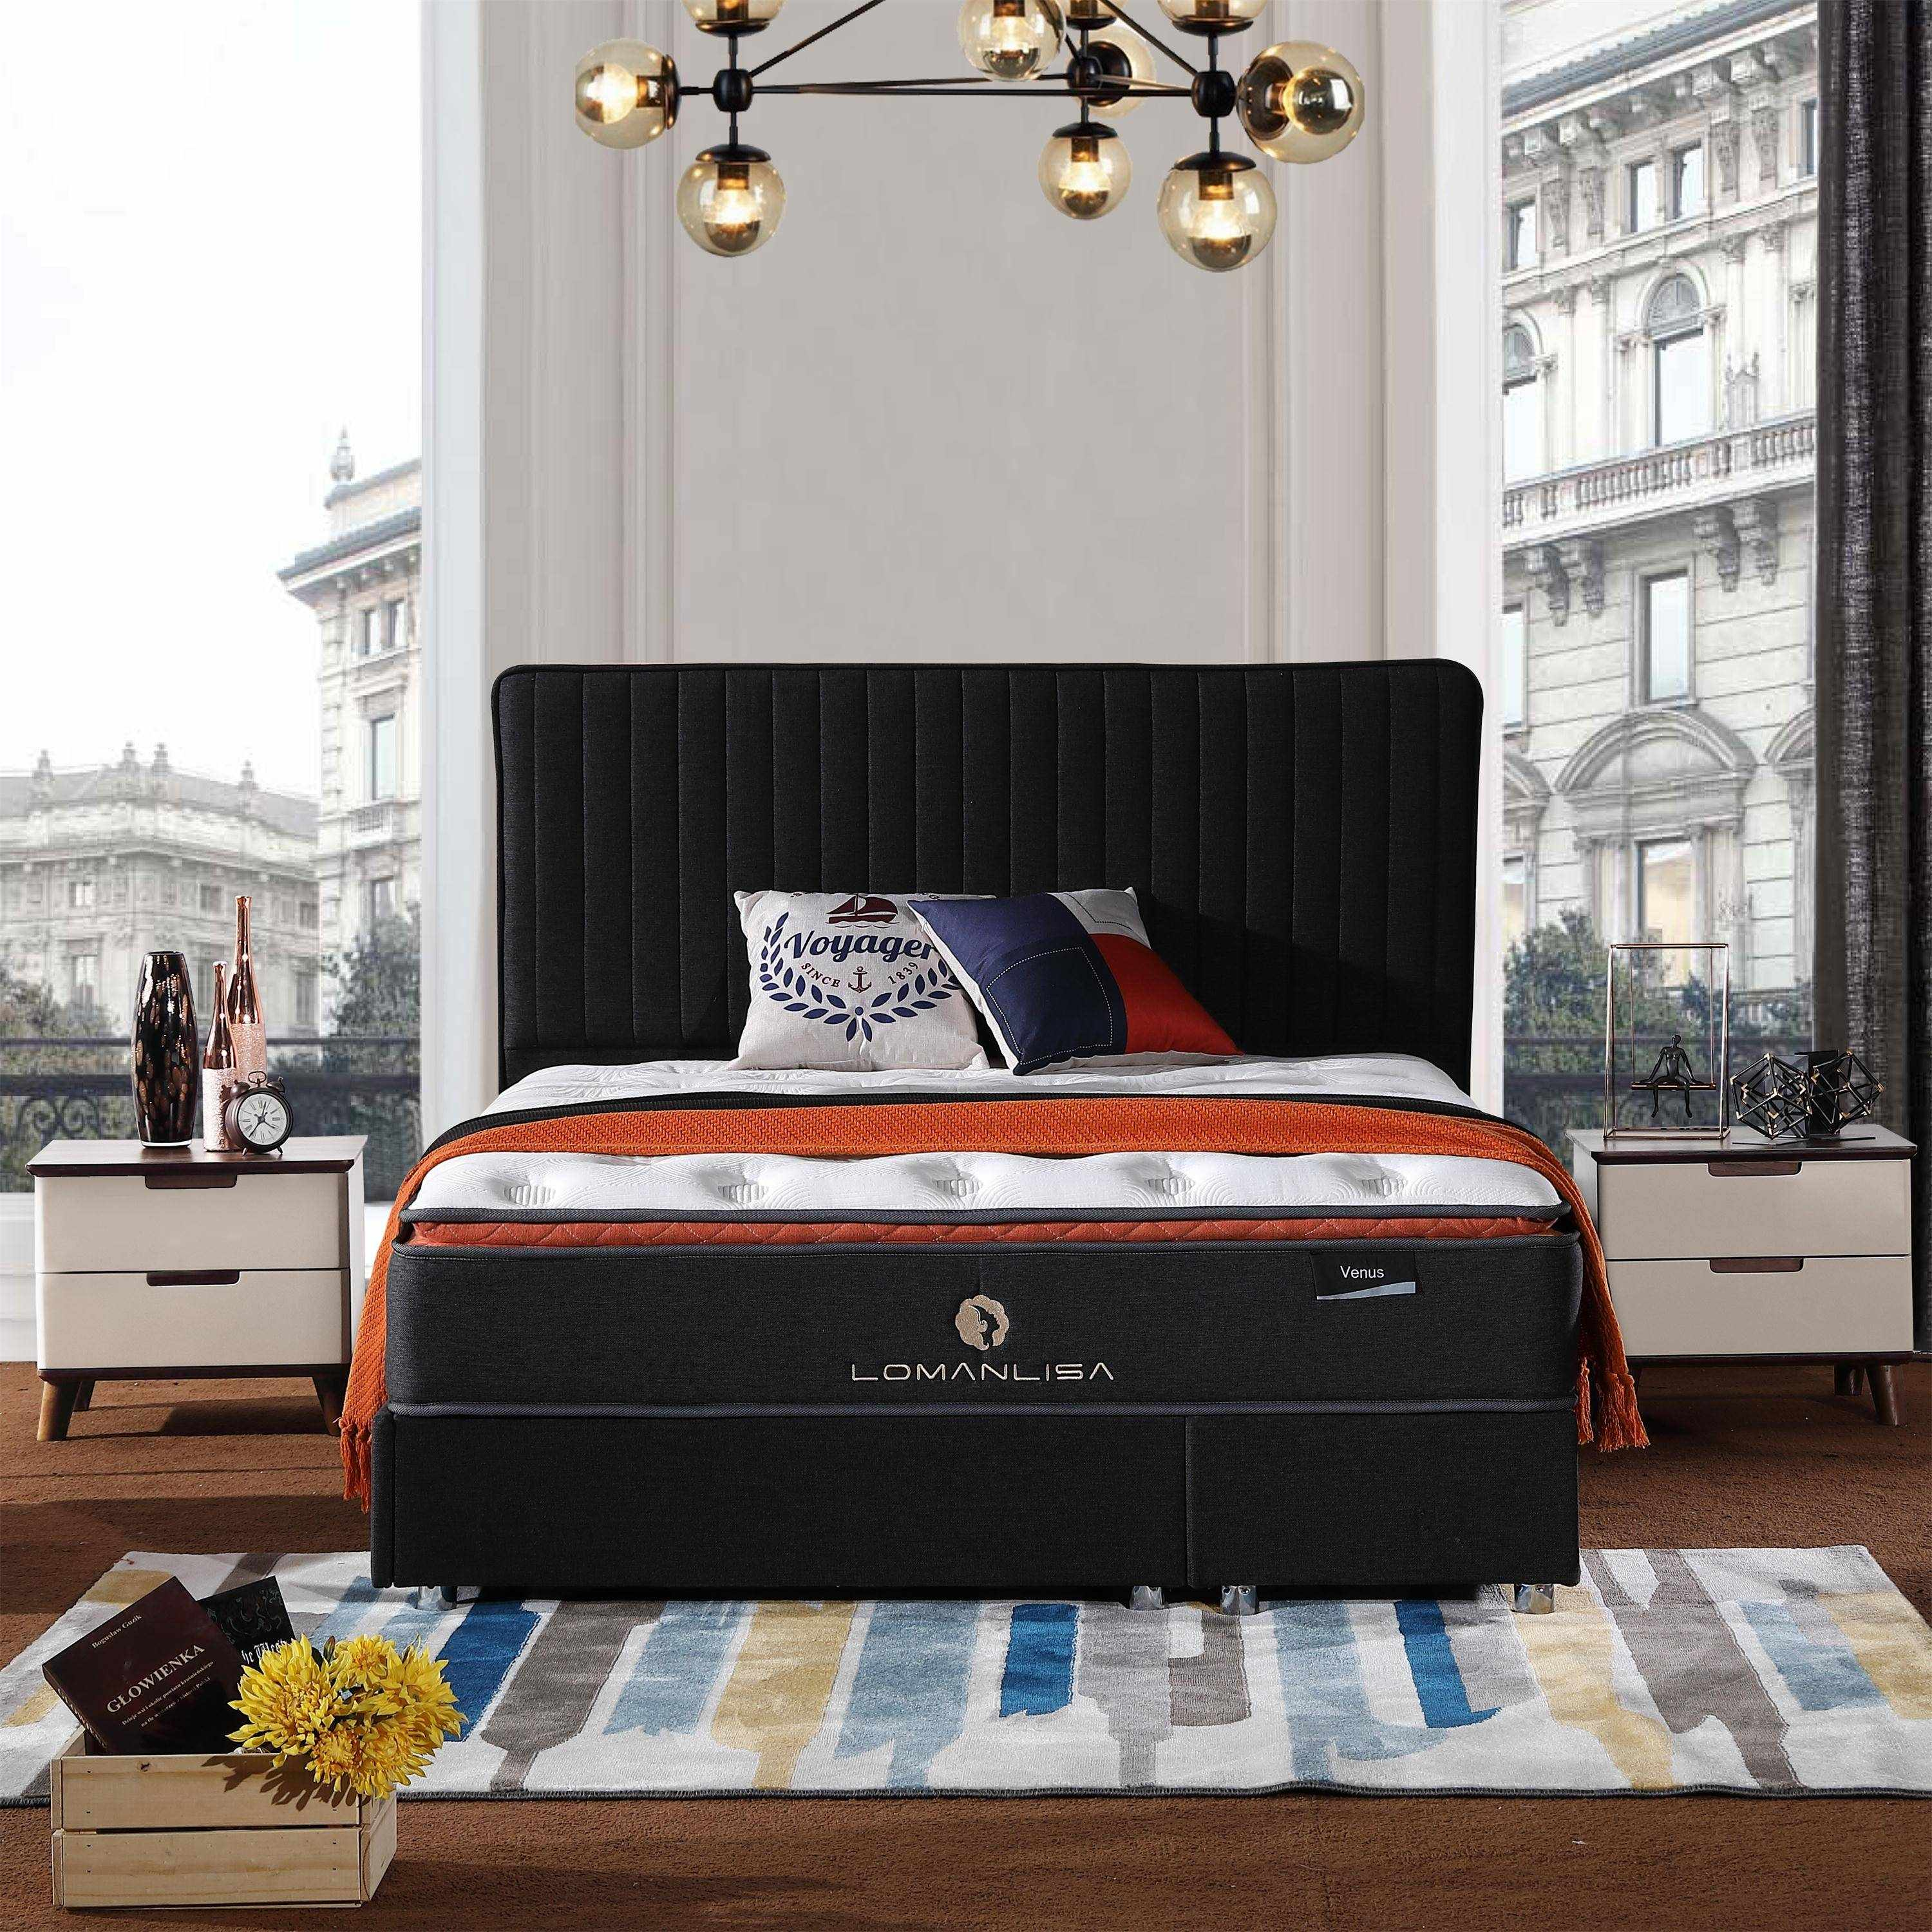 JLH turfted sprung mattress for sale for hotel-1